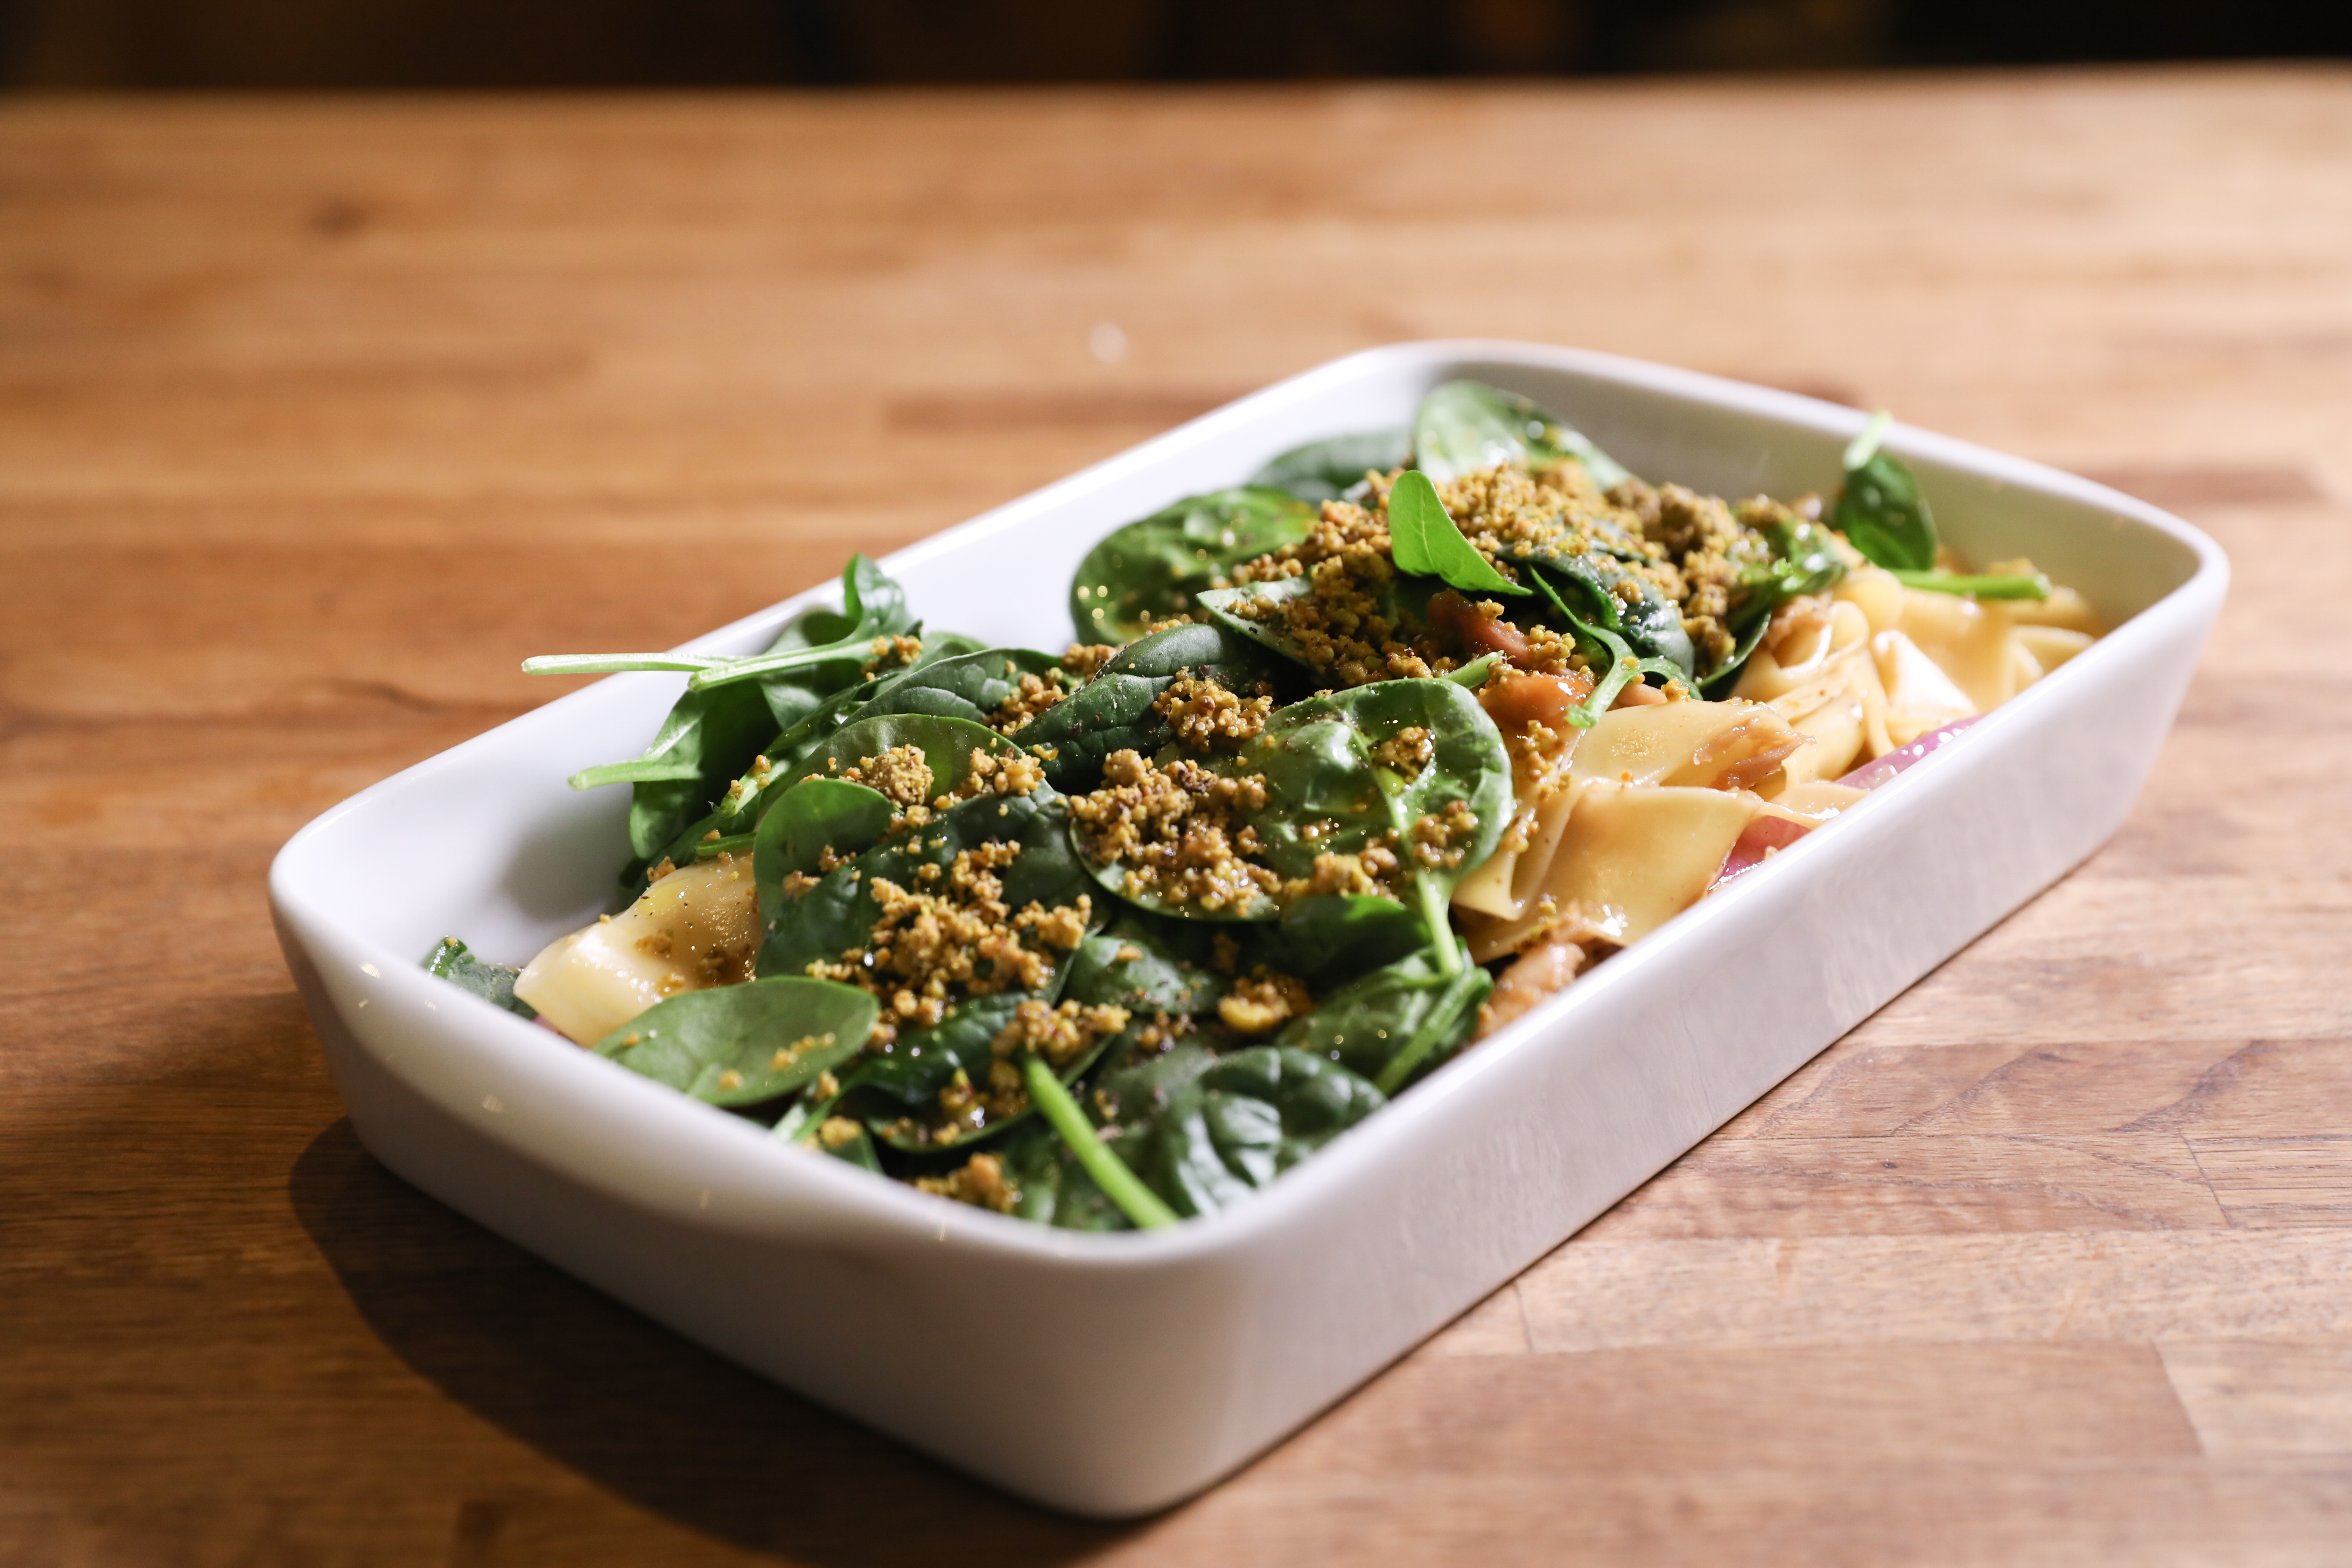 <p>Pumpkin Tagliatelle from Chef Raphael Francois of Le DeSales: At Le DeSales, Chef Raphael Francois makes this pumpkin pasta with an unusual protein: rabbit. We asked him to adapt to make it more accessible to home cooks, and this is the vegetarian version he came up with. (Image: Courtesy Le Desales)</p><p></p>